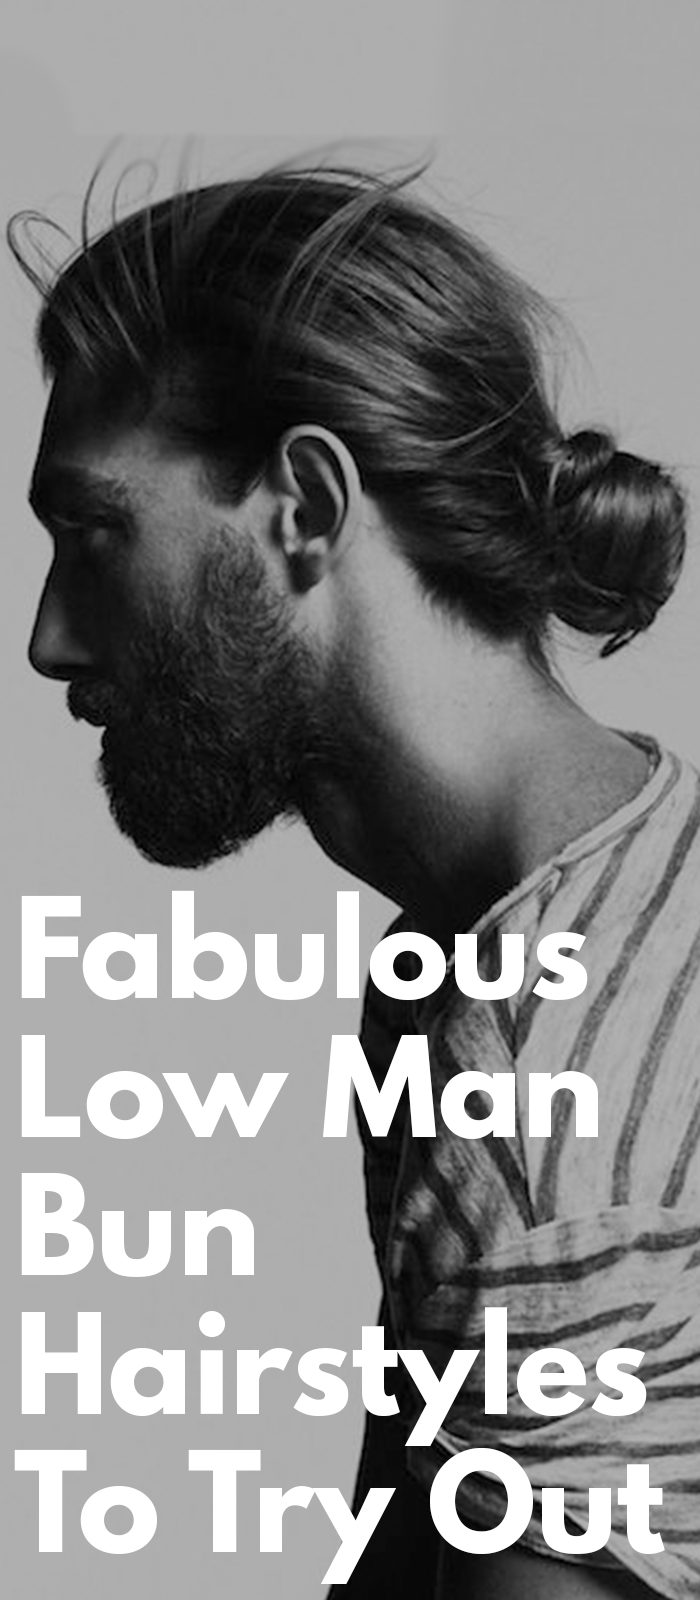 Fabulous Low Man Bun Hairstyles To Try Out